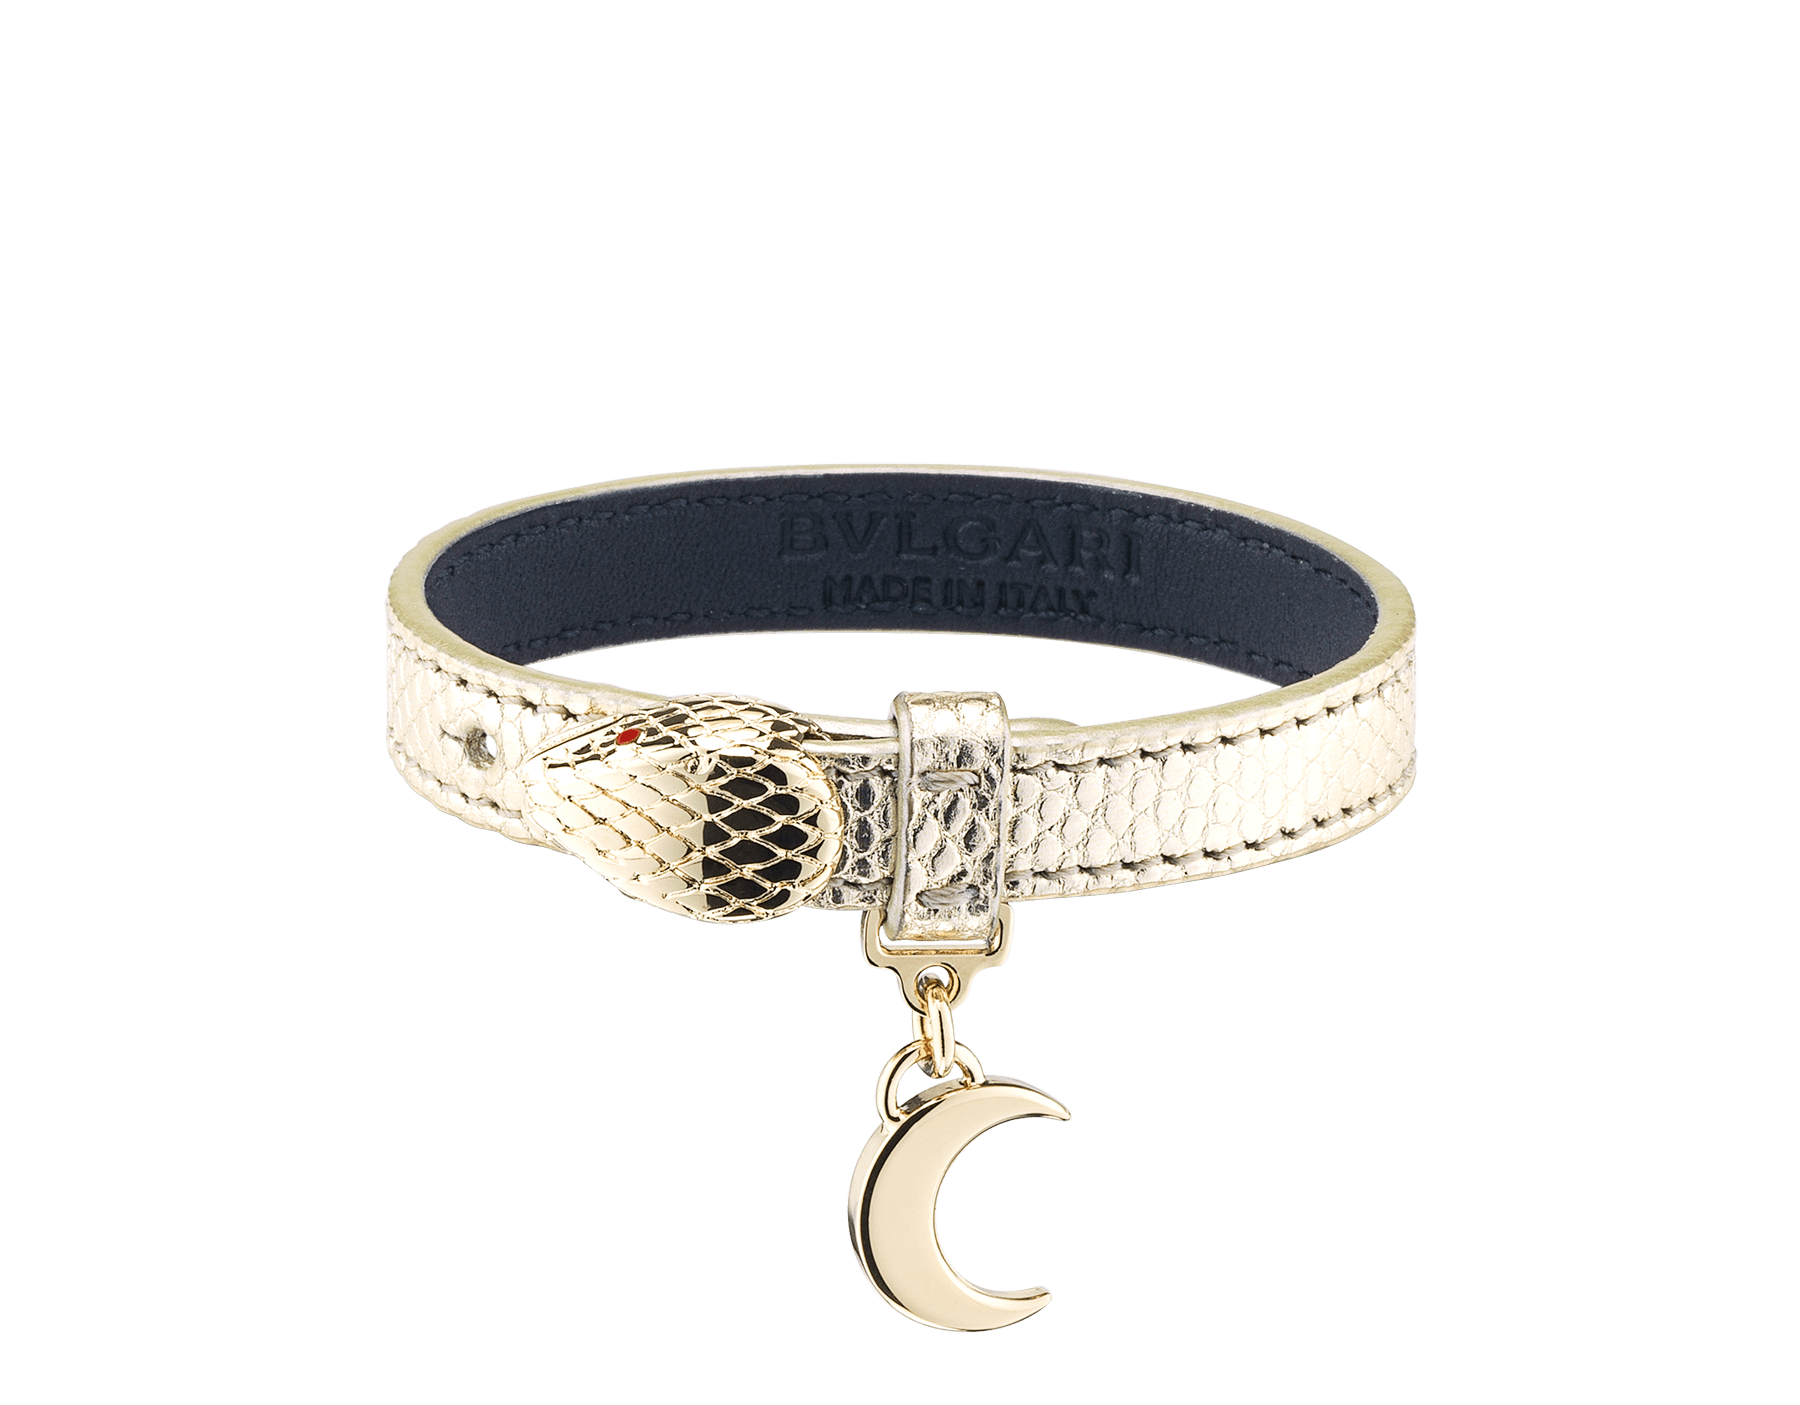 """""""Serpenti Forever"""" bracelet in """"Molten"""" gold karung skin. New Serpenti head closure in gold-plated brass, finished with red enamel eyes and a half-moon charm. BRACLT-SERPENTIU-MK image 1"""